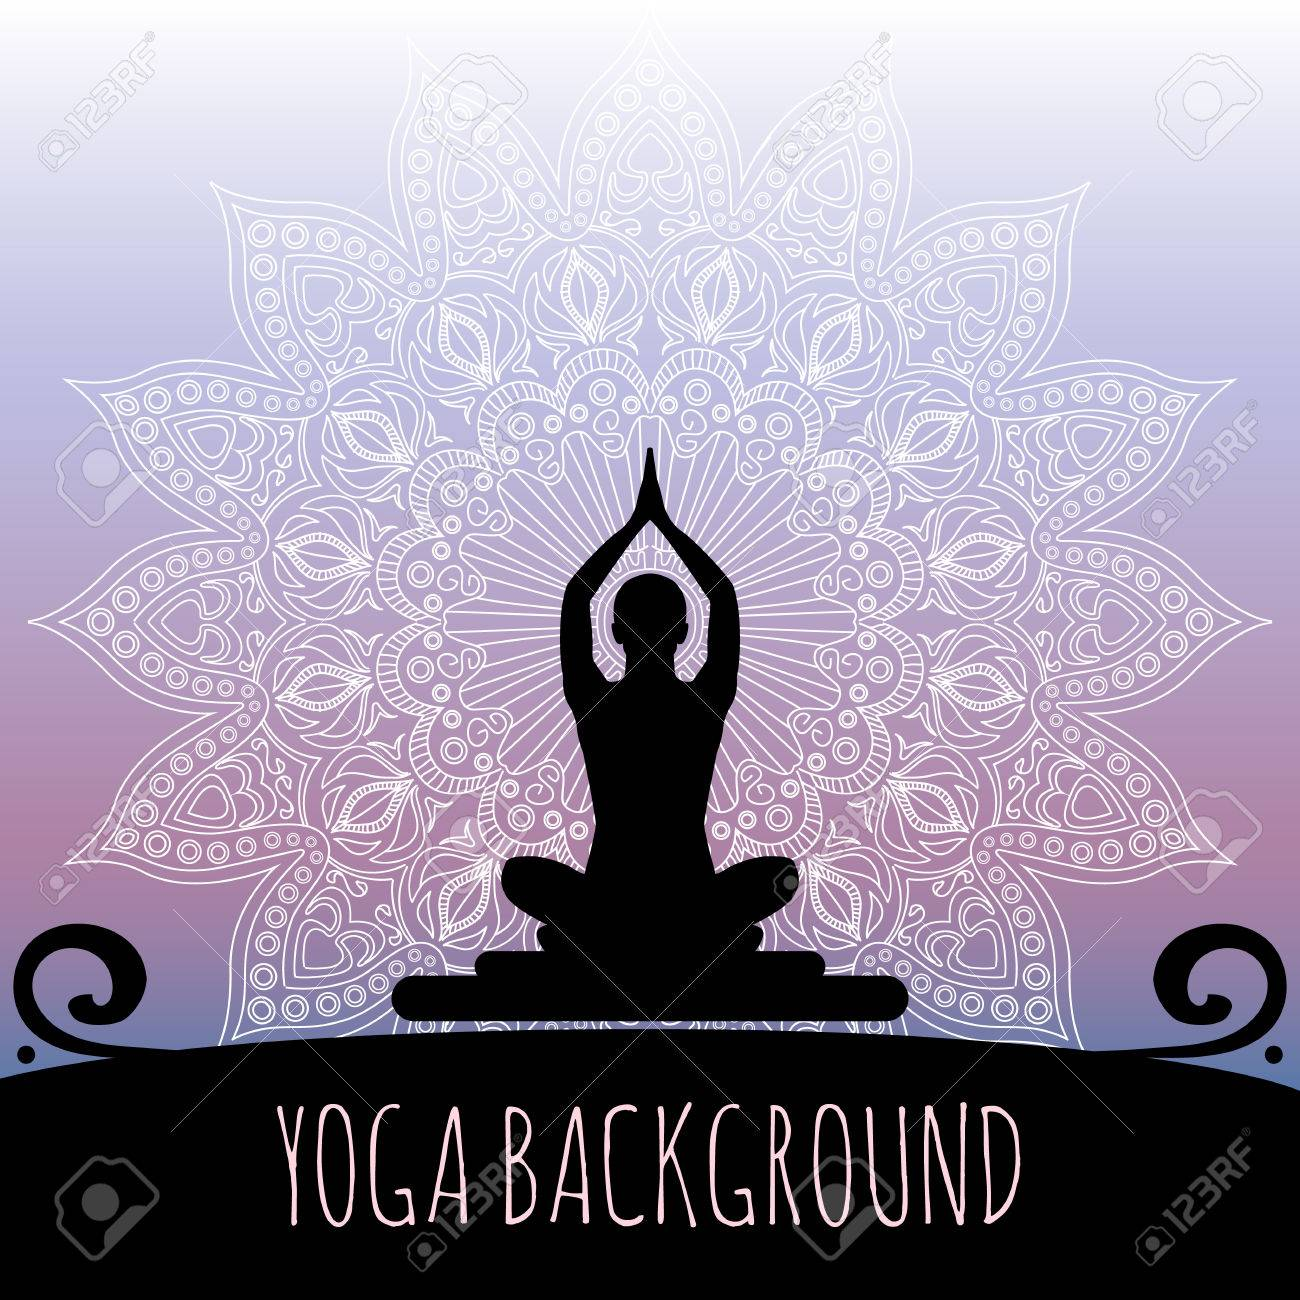 Yoga background. Stock Vector - 33918988